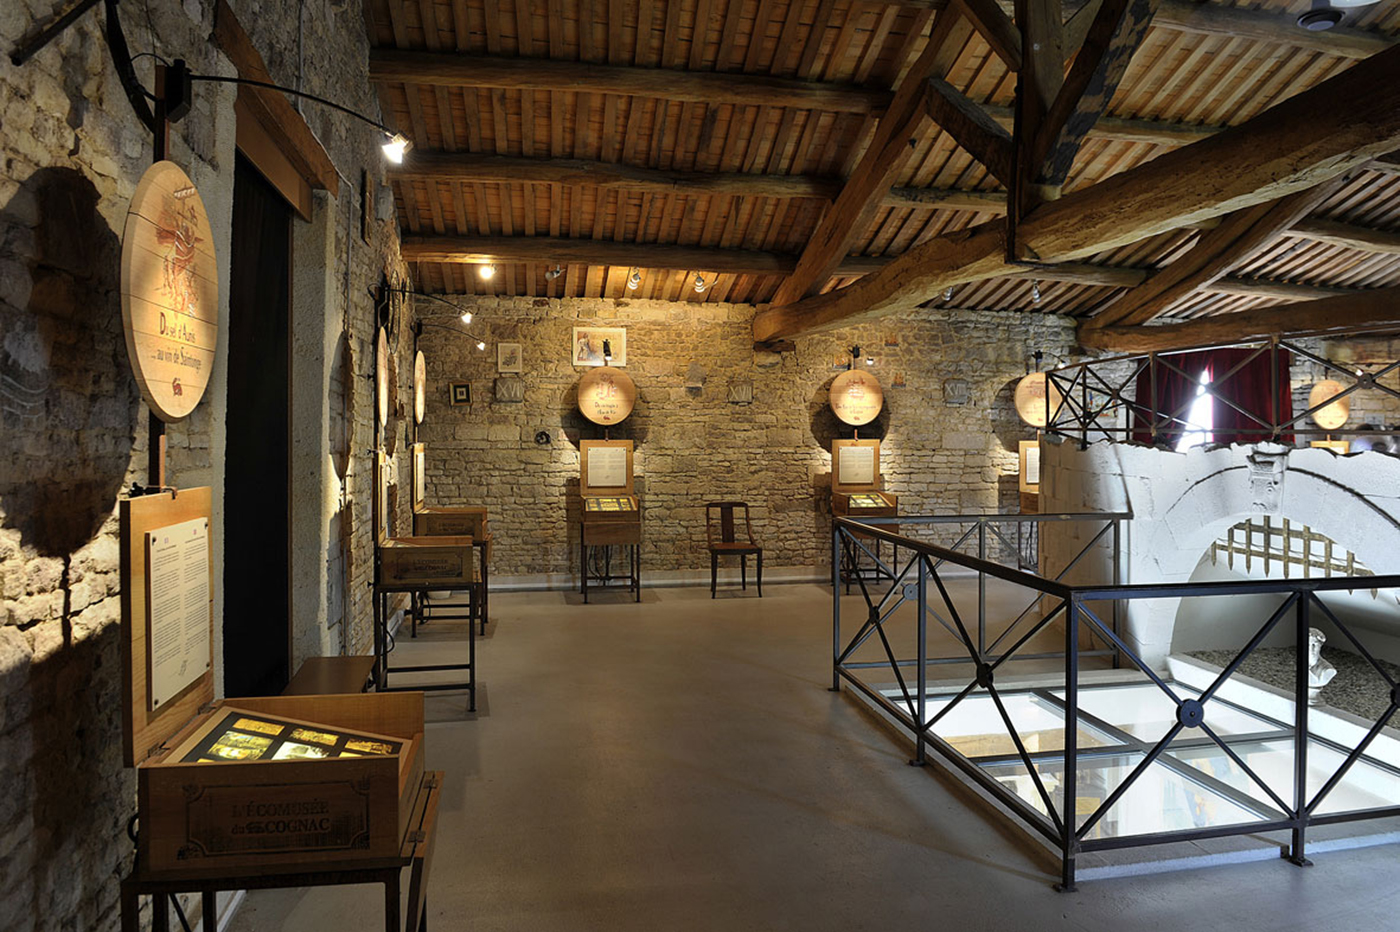 Exhibition at the Ecomuseum of Cognac